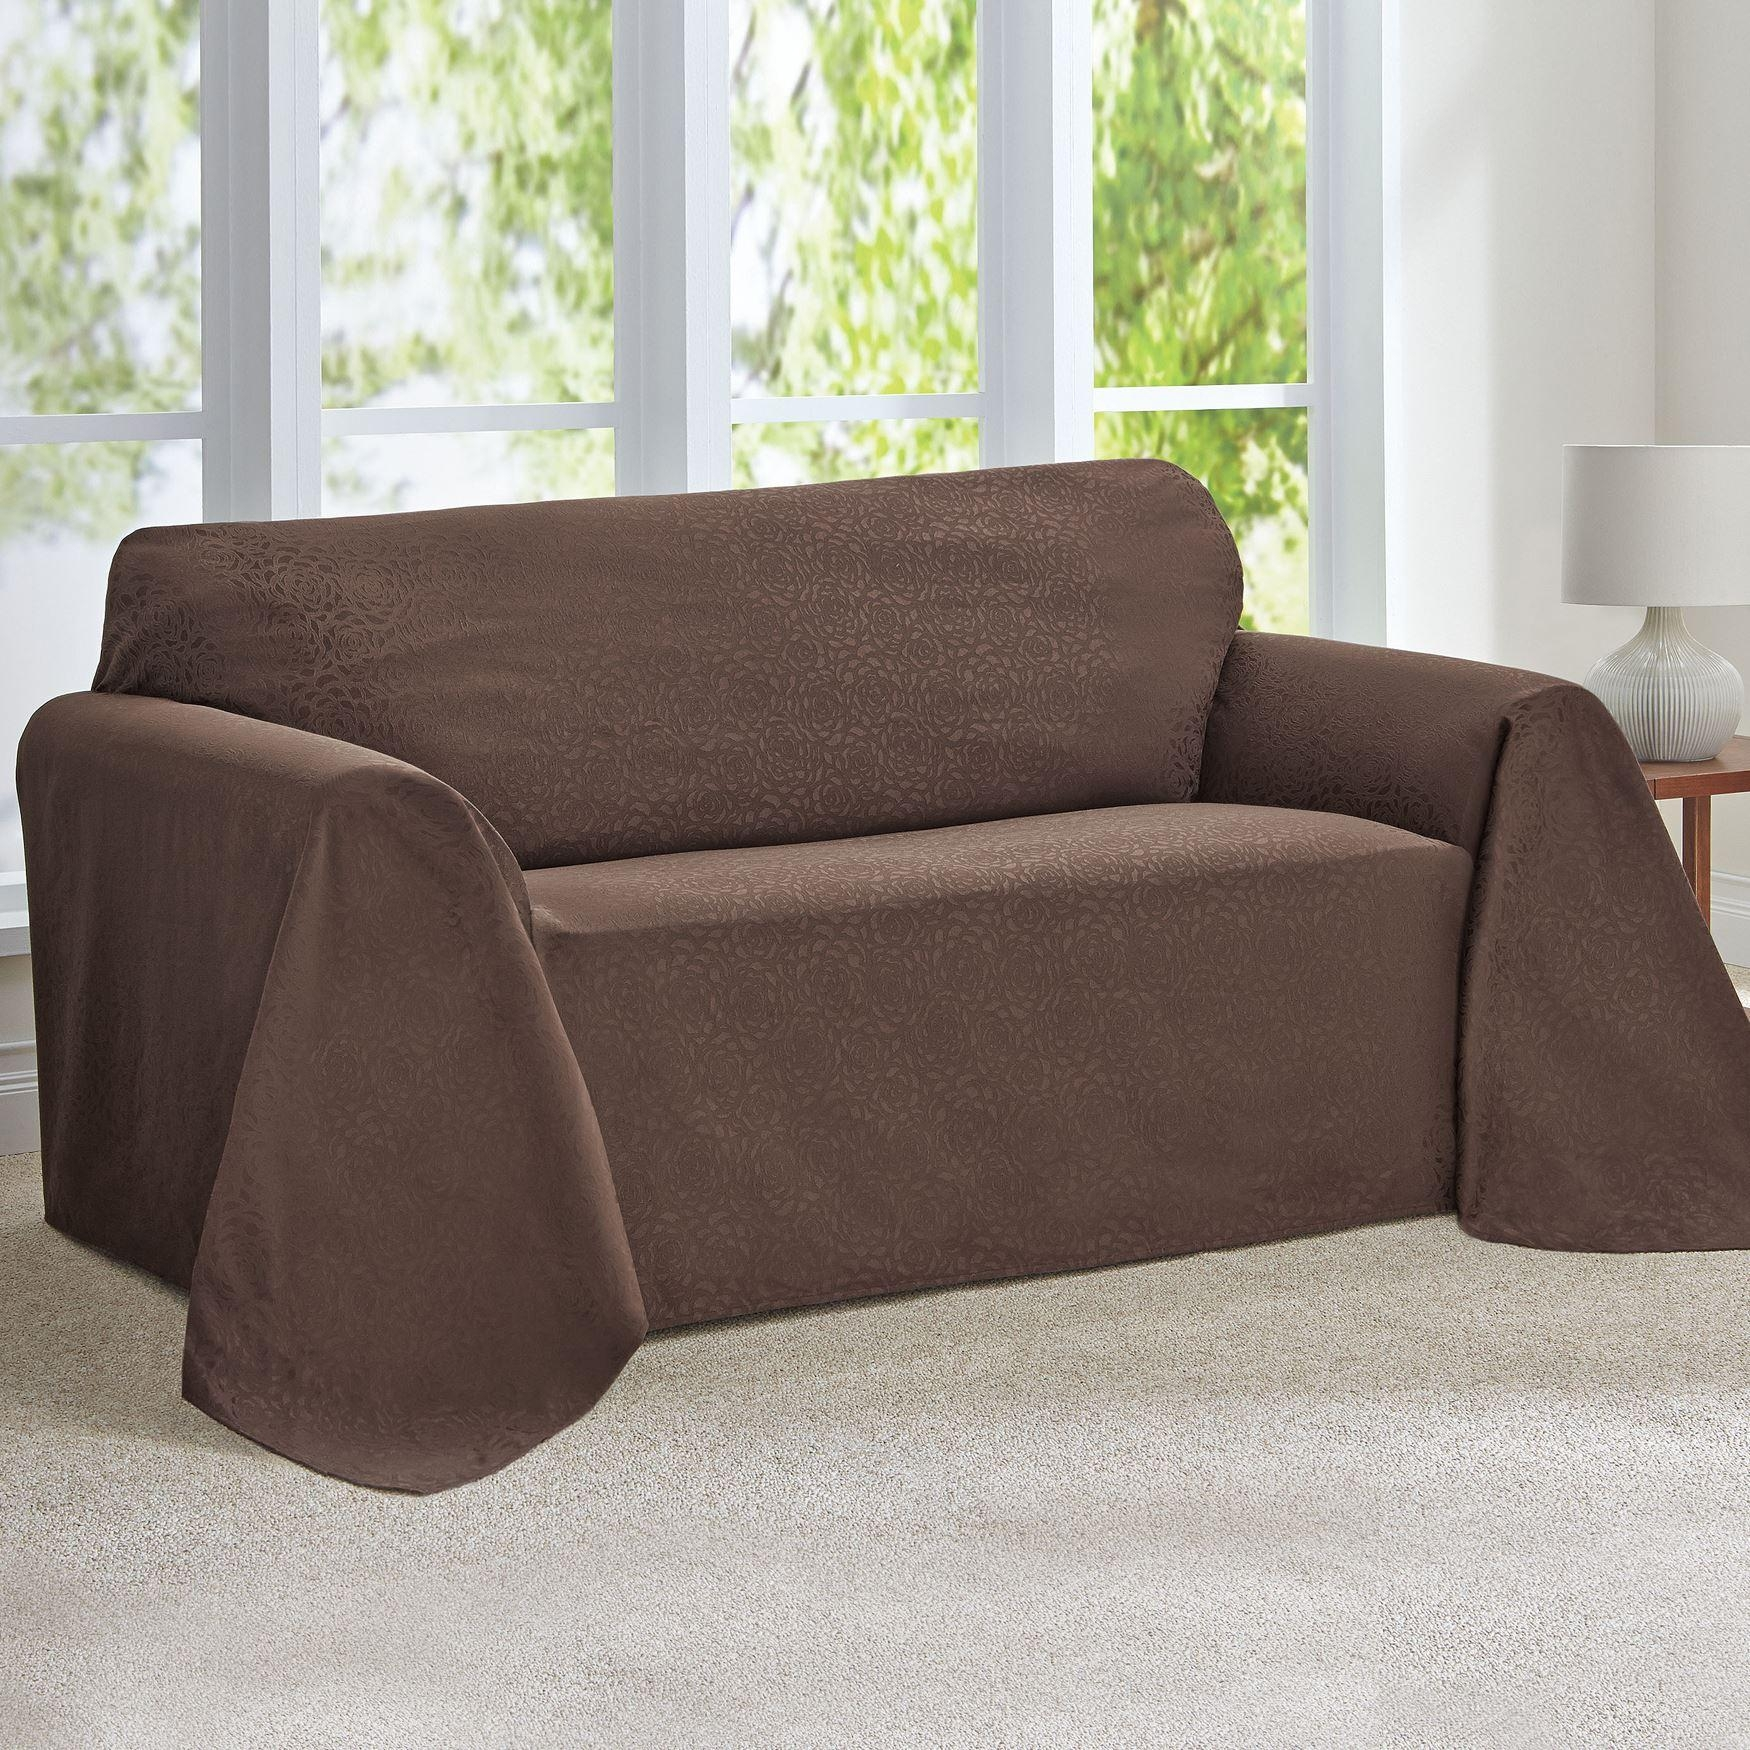 Furniture: Couch Covers At Walmart To Make Your Furniture Stylish Pertaining To Walmart Slipcovers For Sofas (Image 4 of 20)